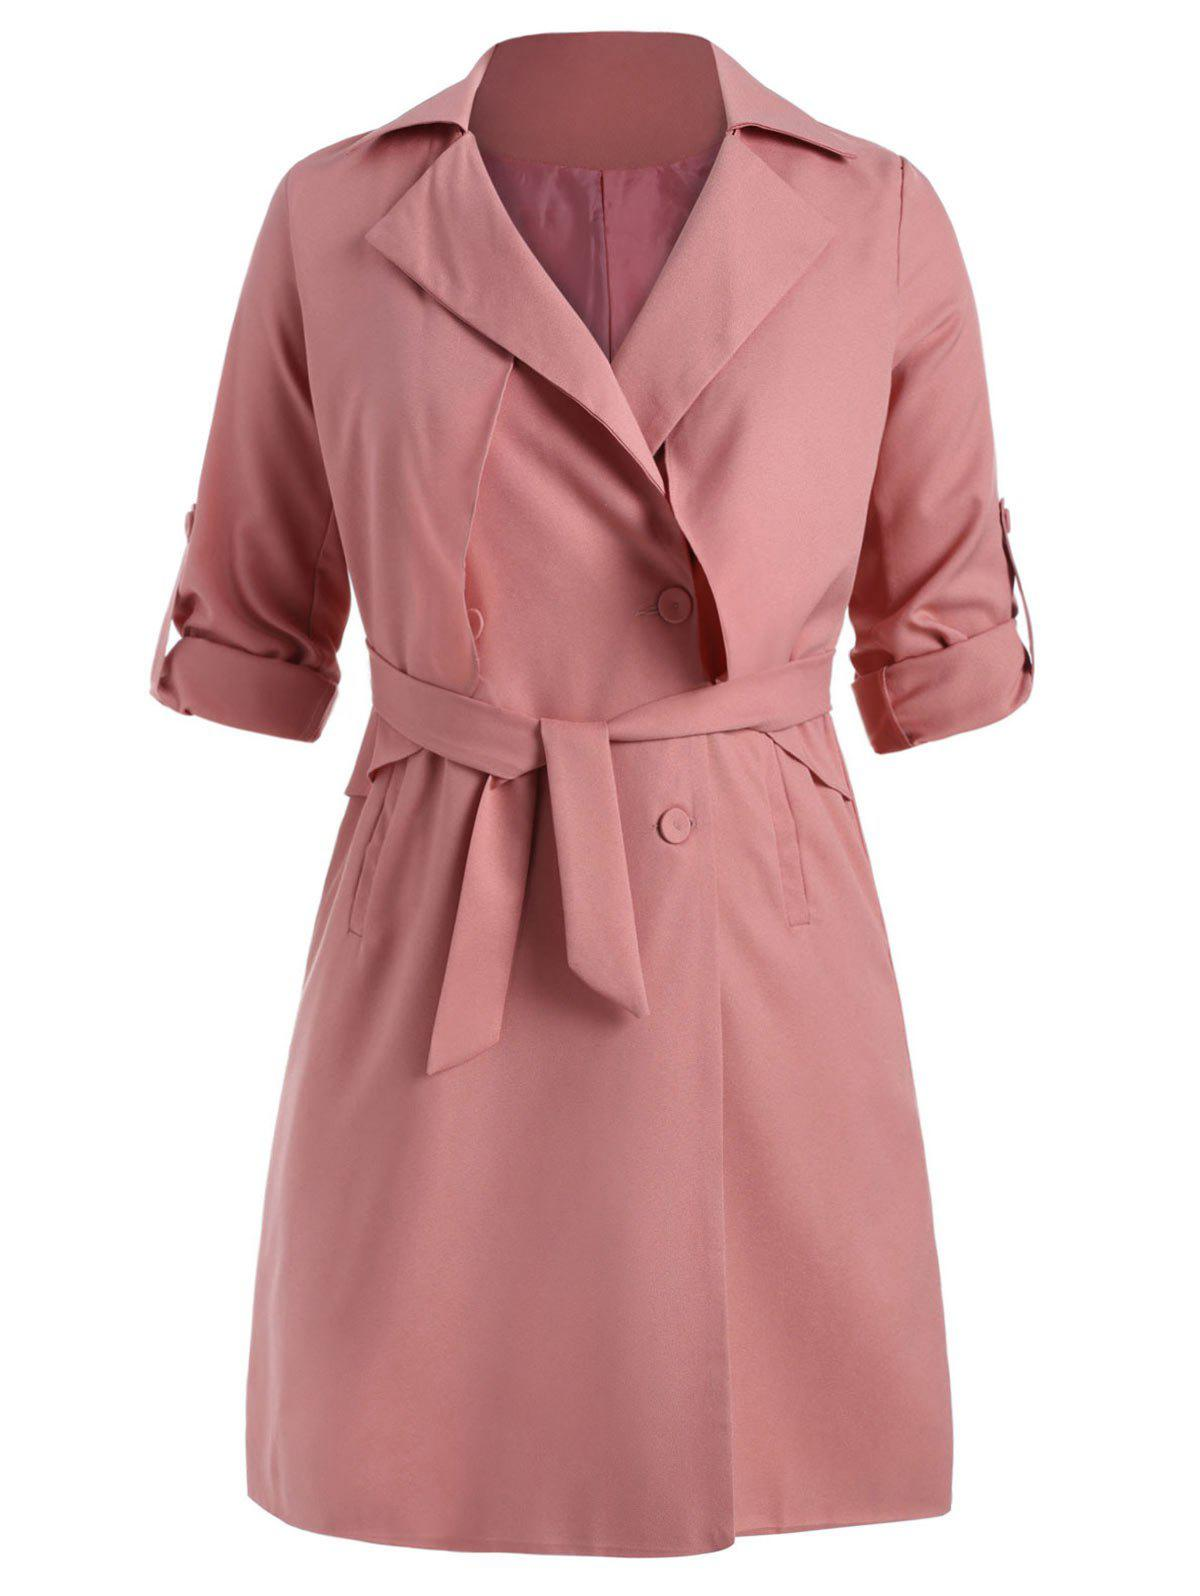 Chic Knee Length Plus Size Trench Coat with Belt